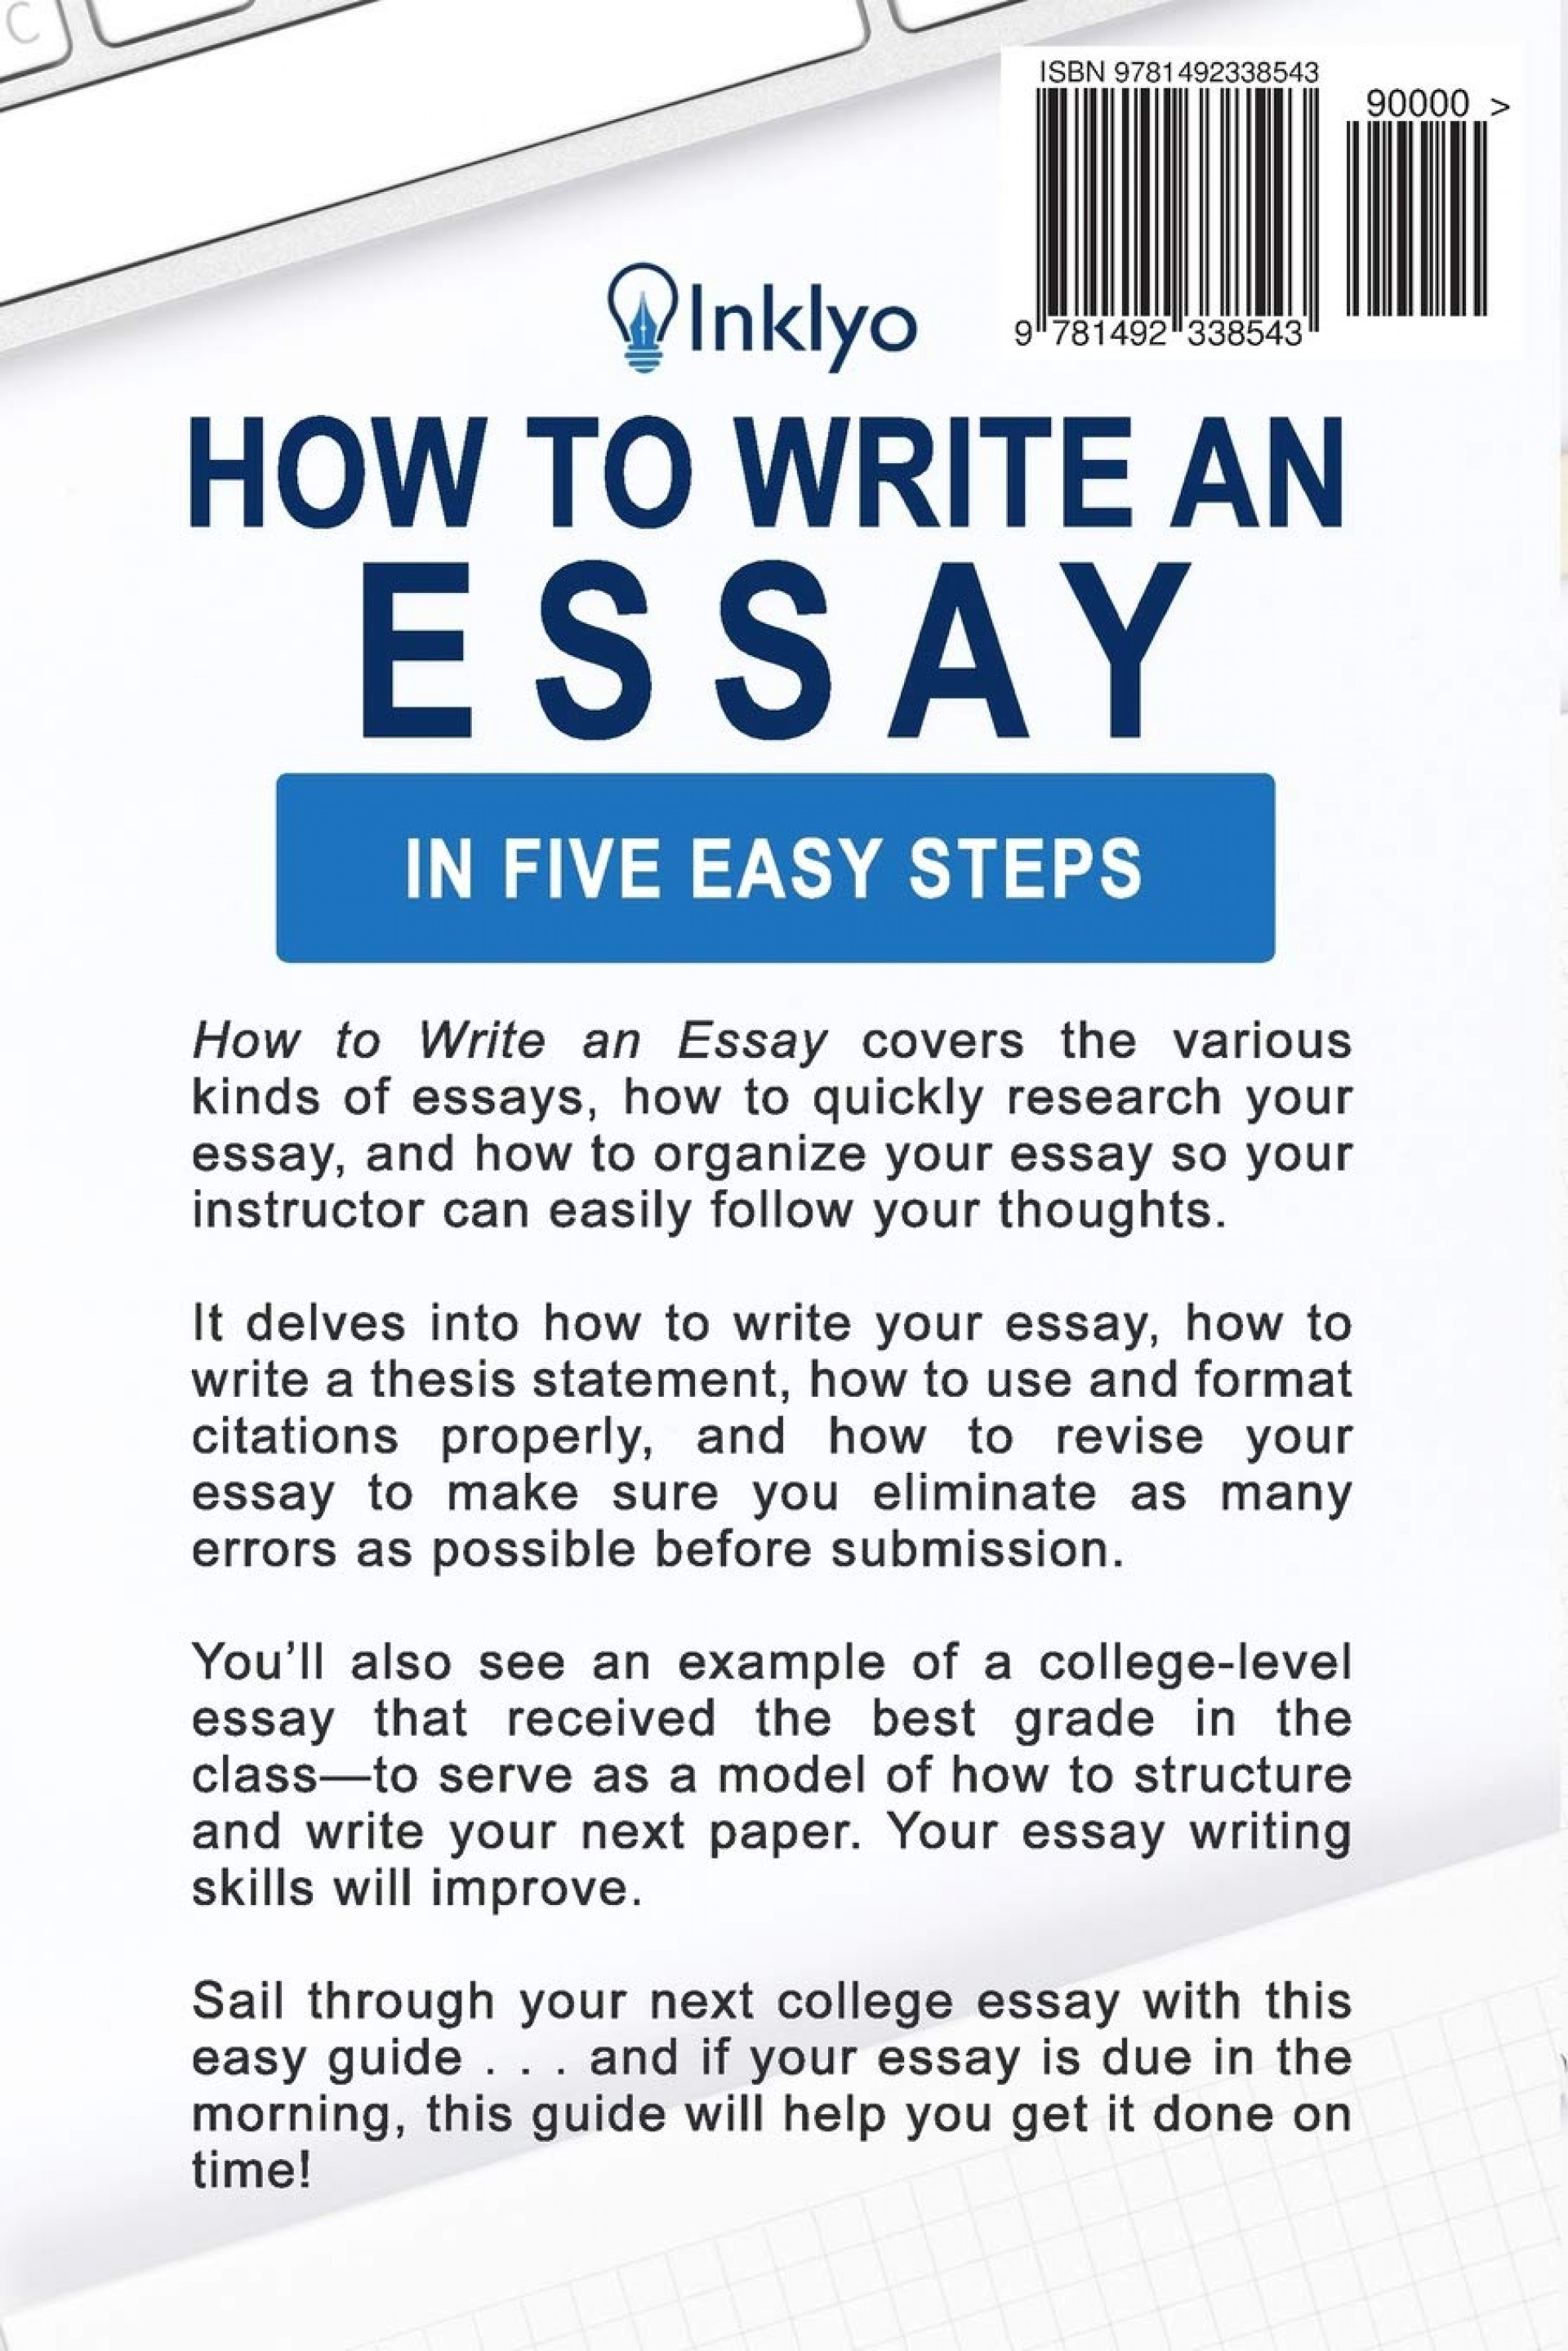 003 How To Write Essay Example Archaicawful A Introduction Fast Synthesis Outline 1920